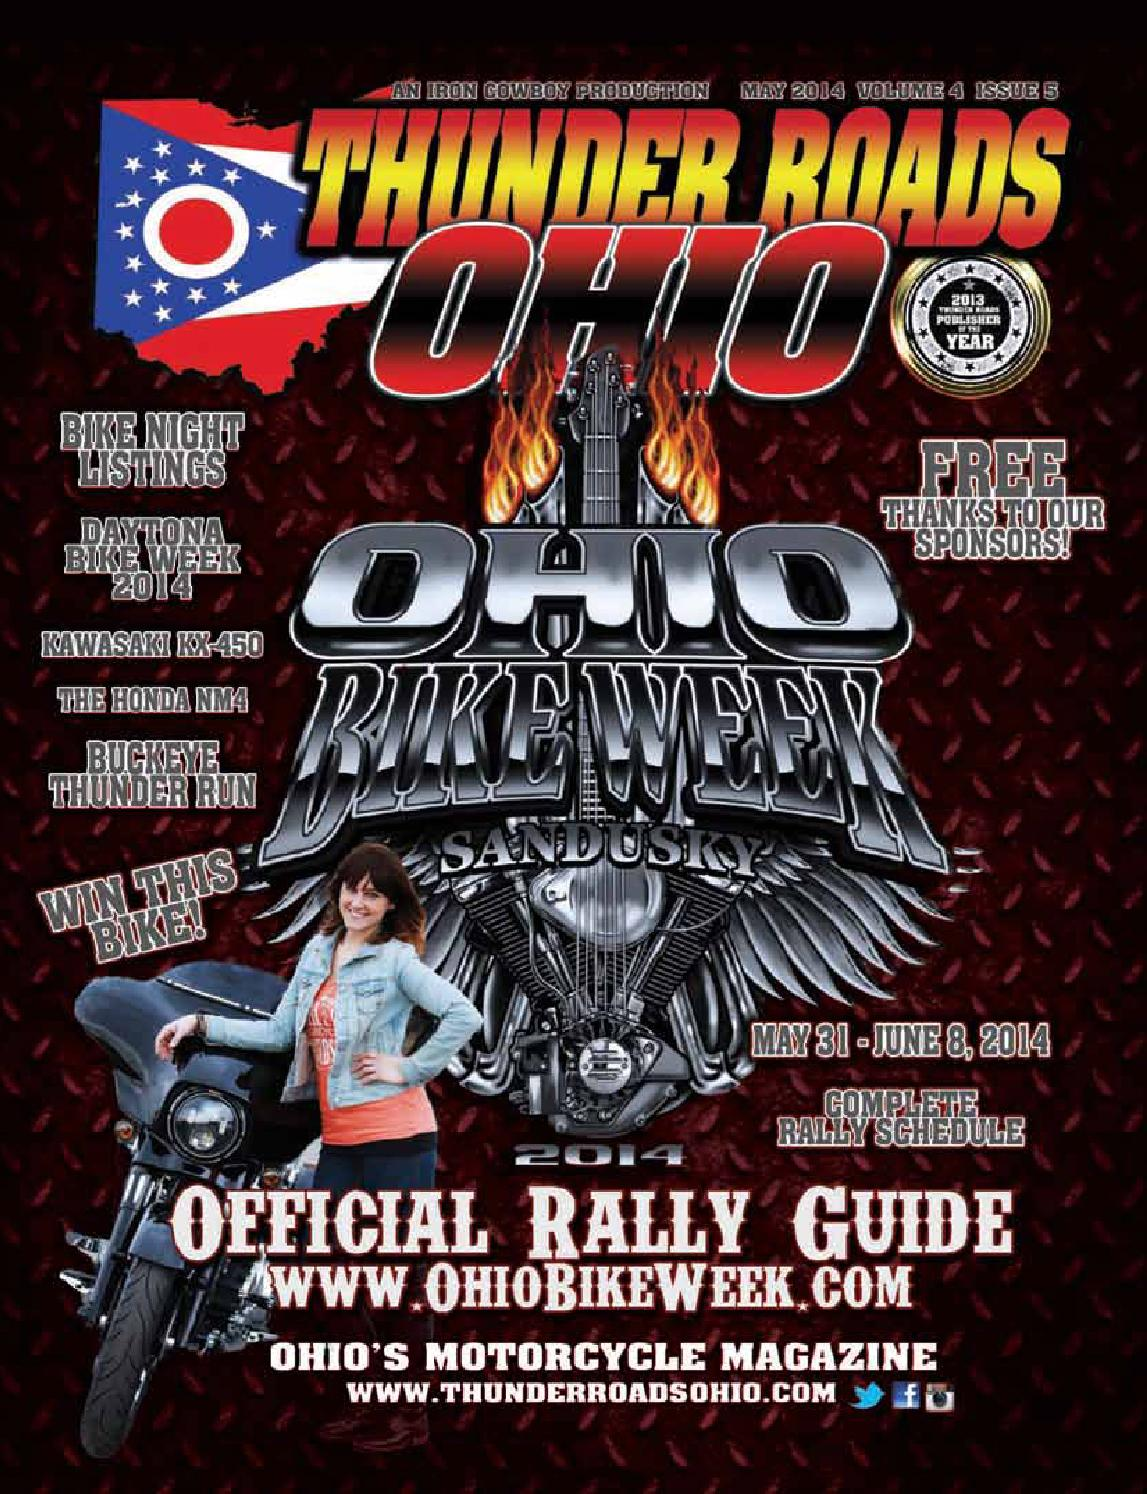 thunder roads ohio by thunder roads ohio magazine issuu thunder roads ohio 2014